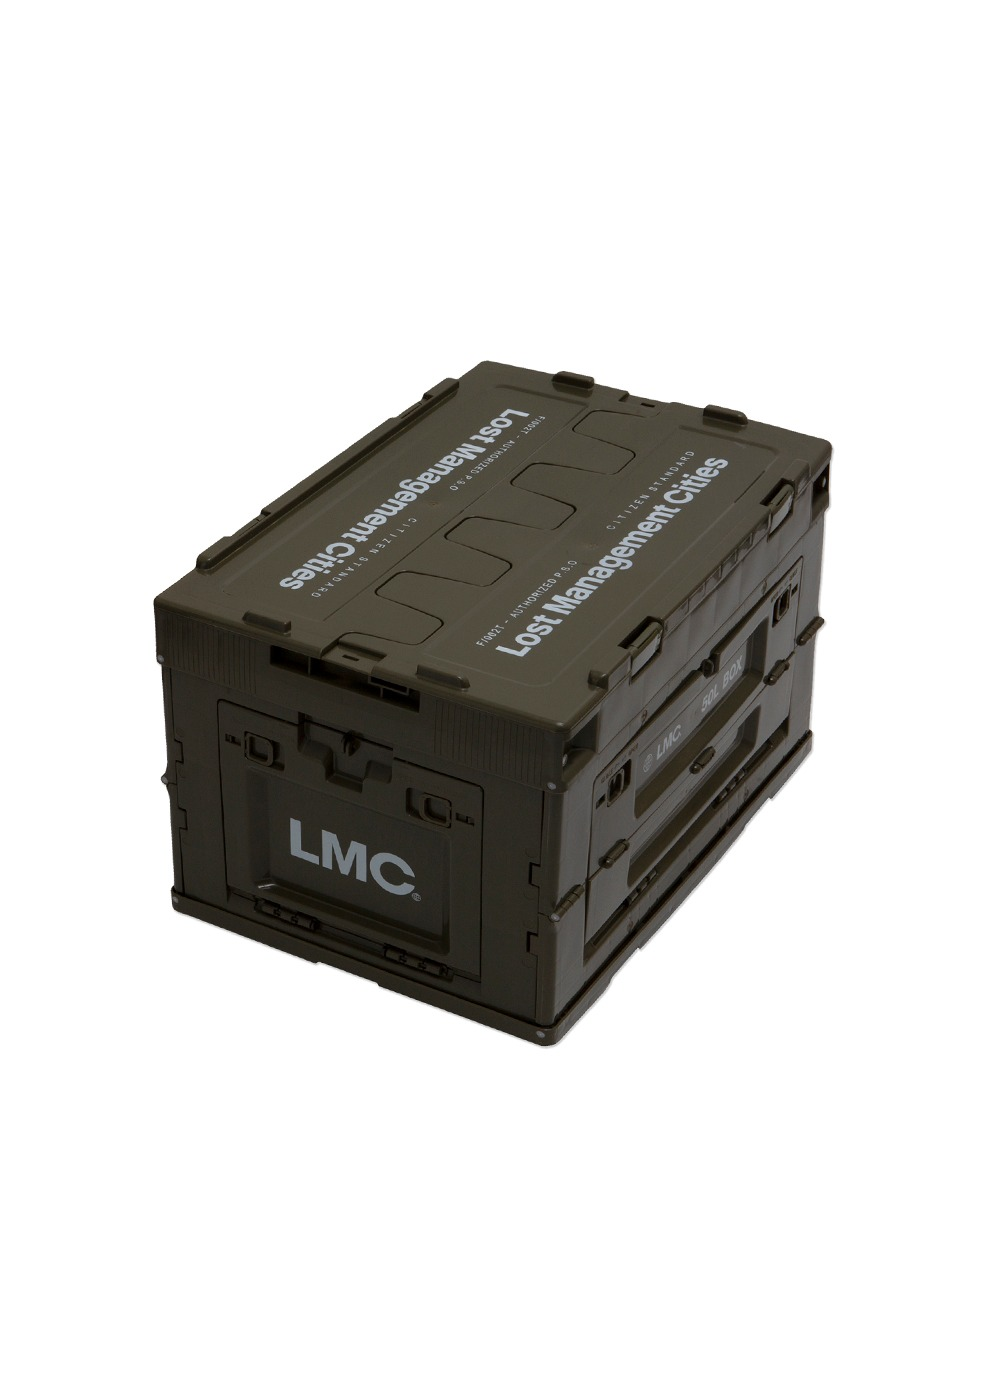 LMC CONTAINER 50L olive